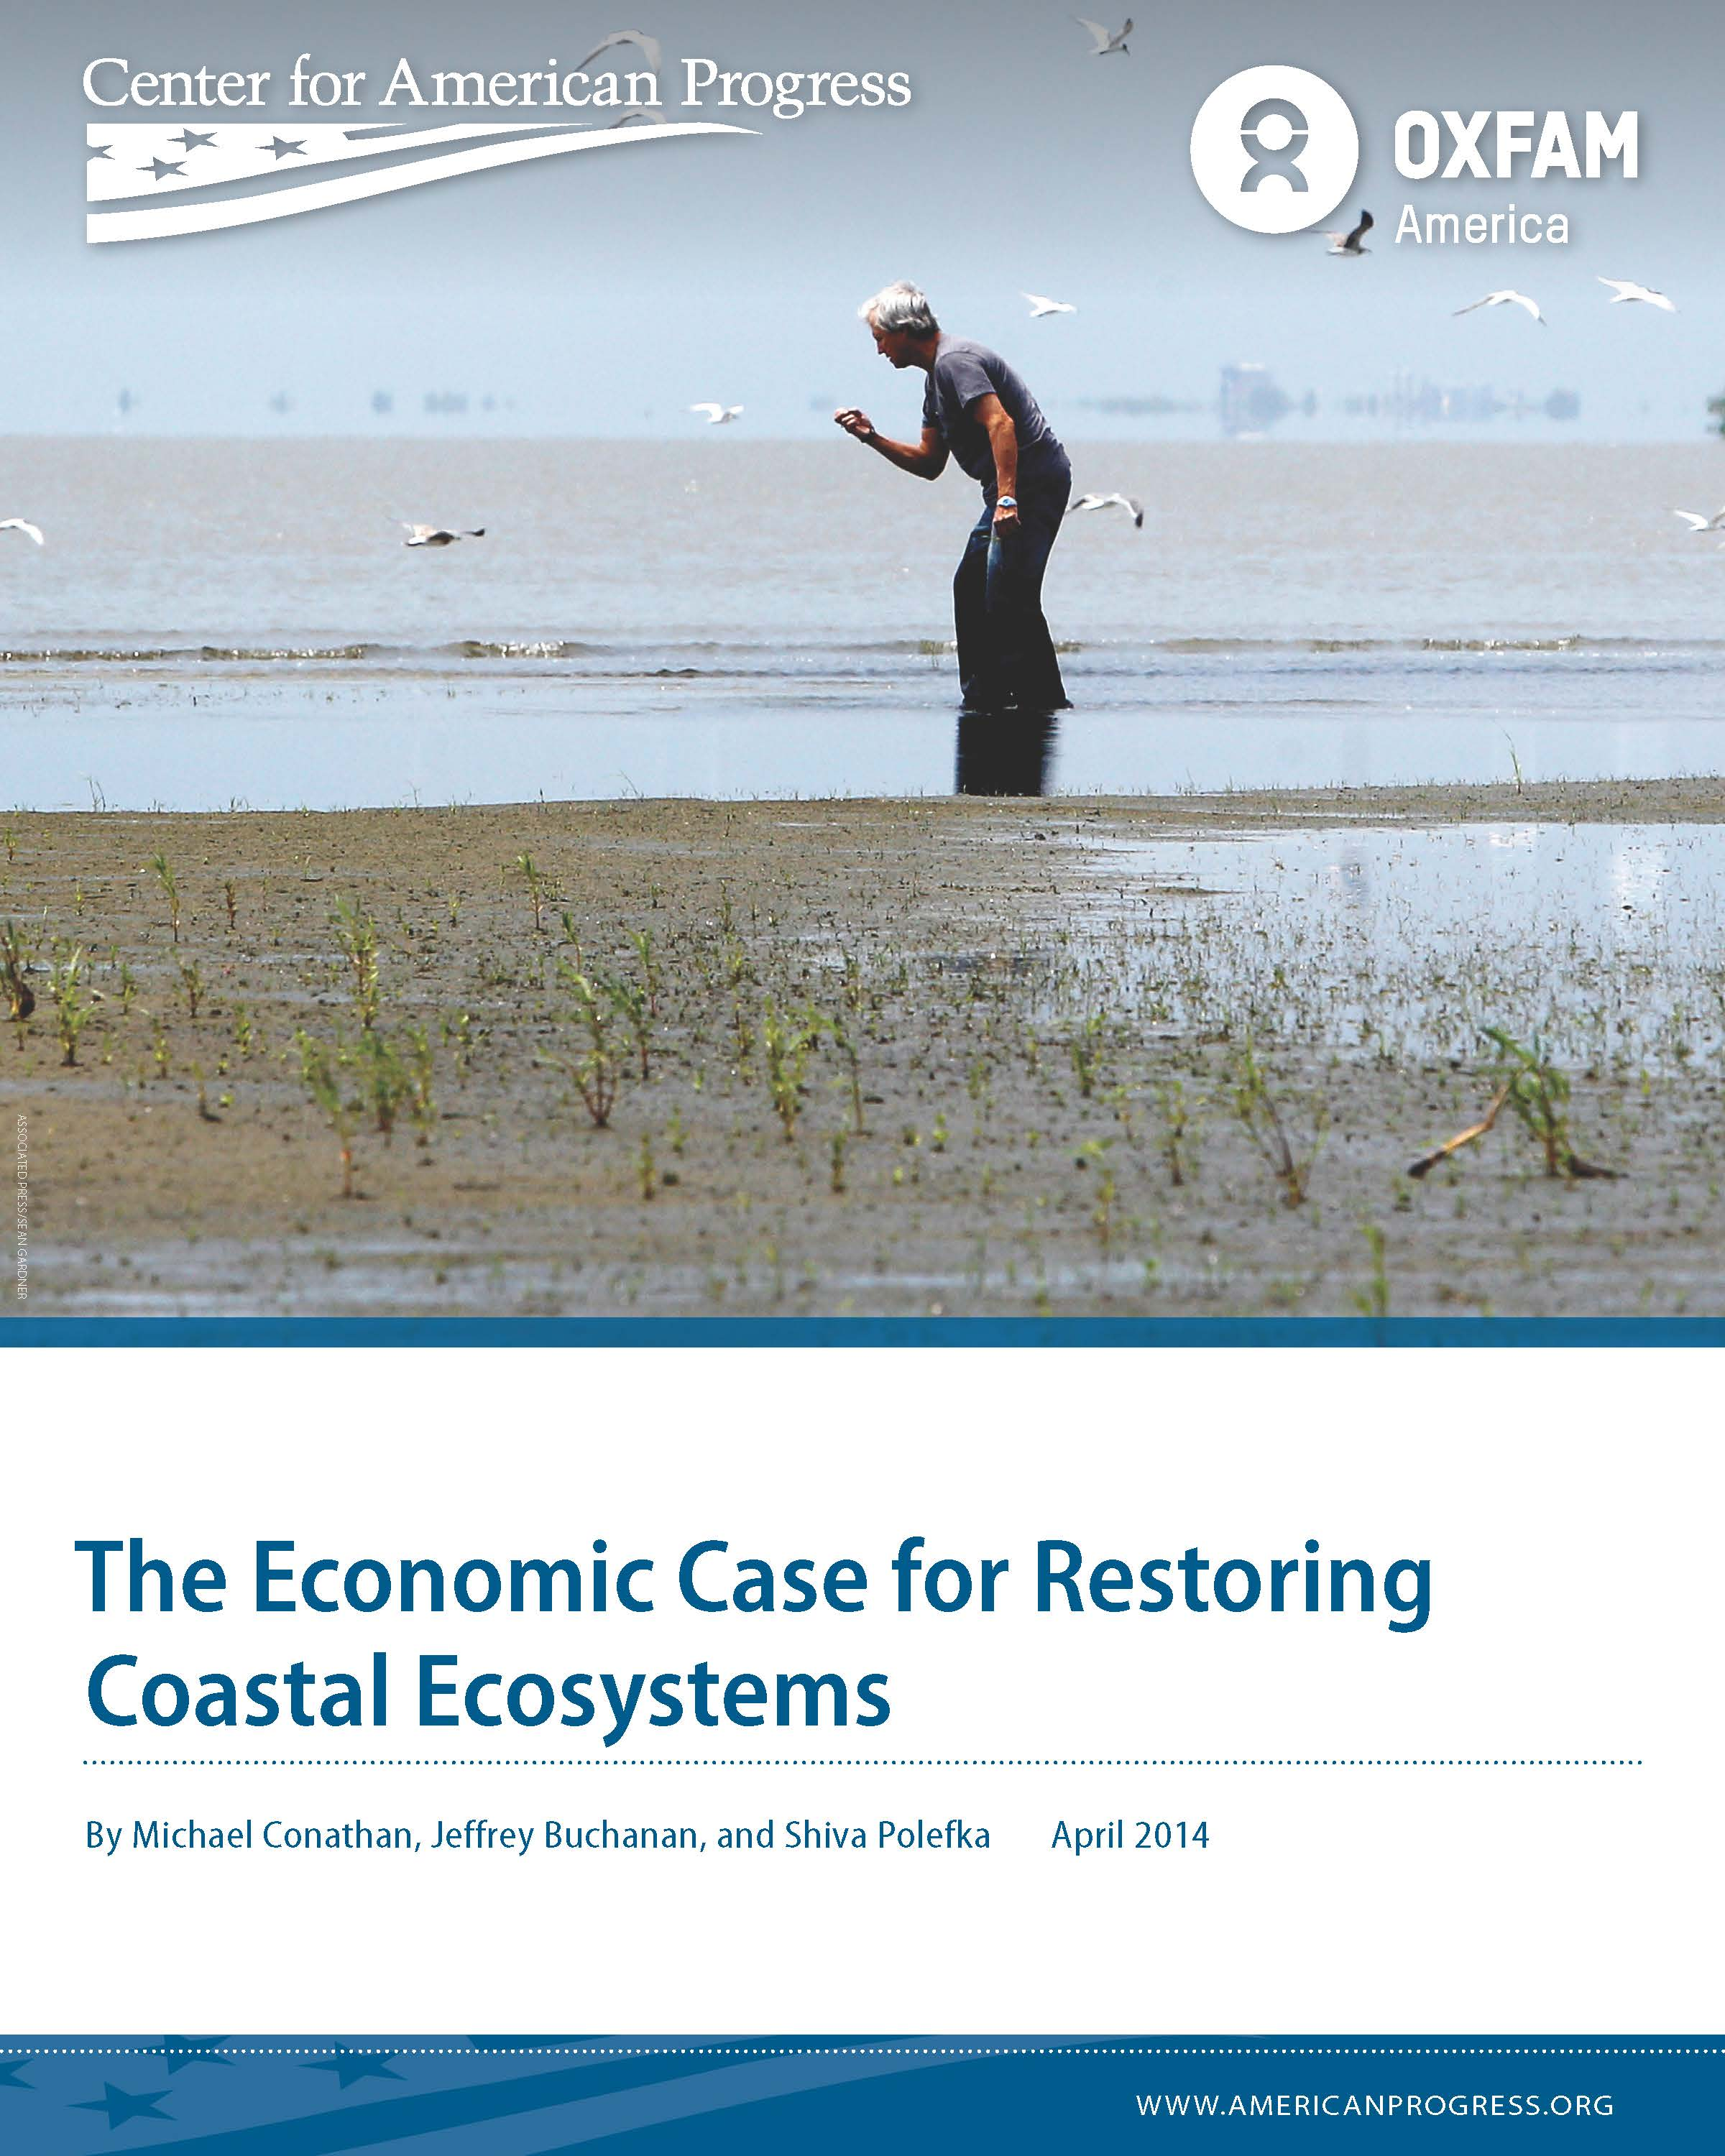 The Economic Case for Restoring Coastal Ecosystems